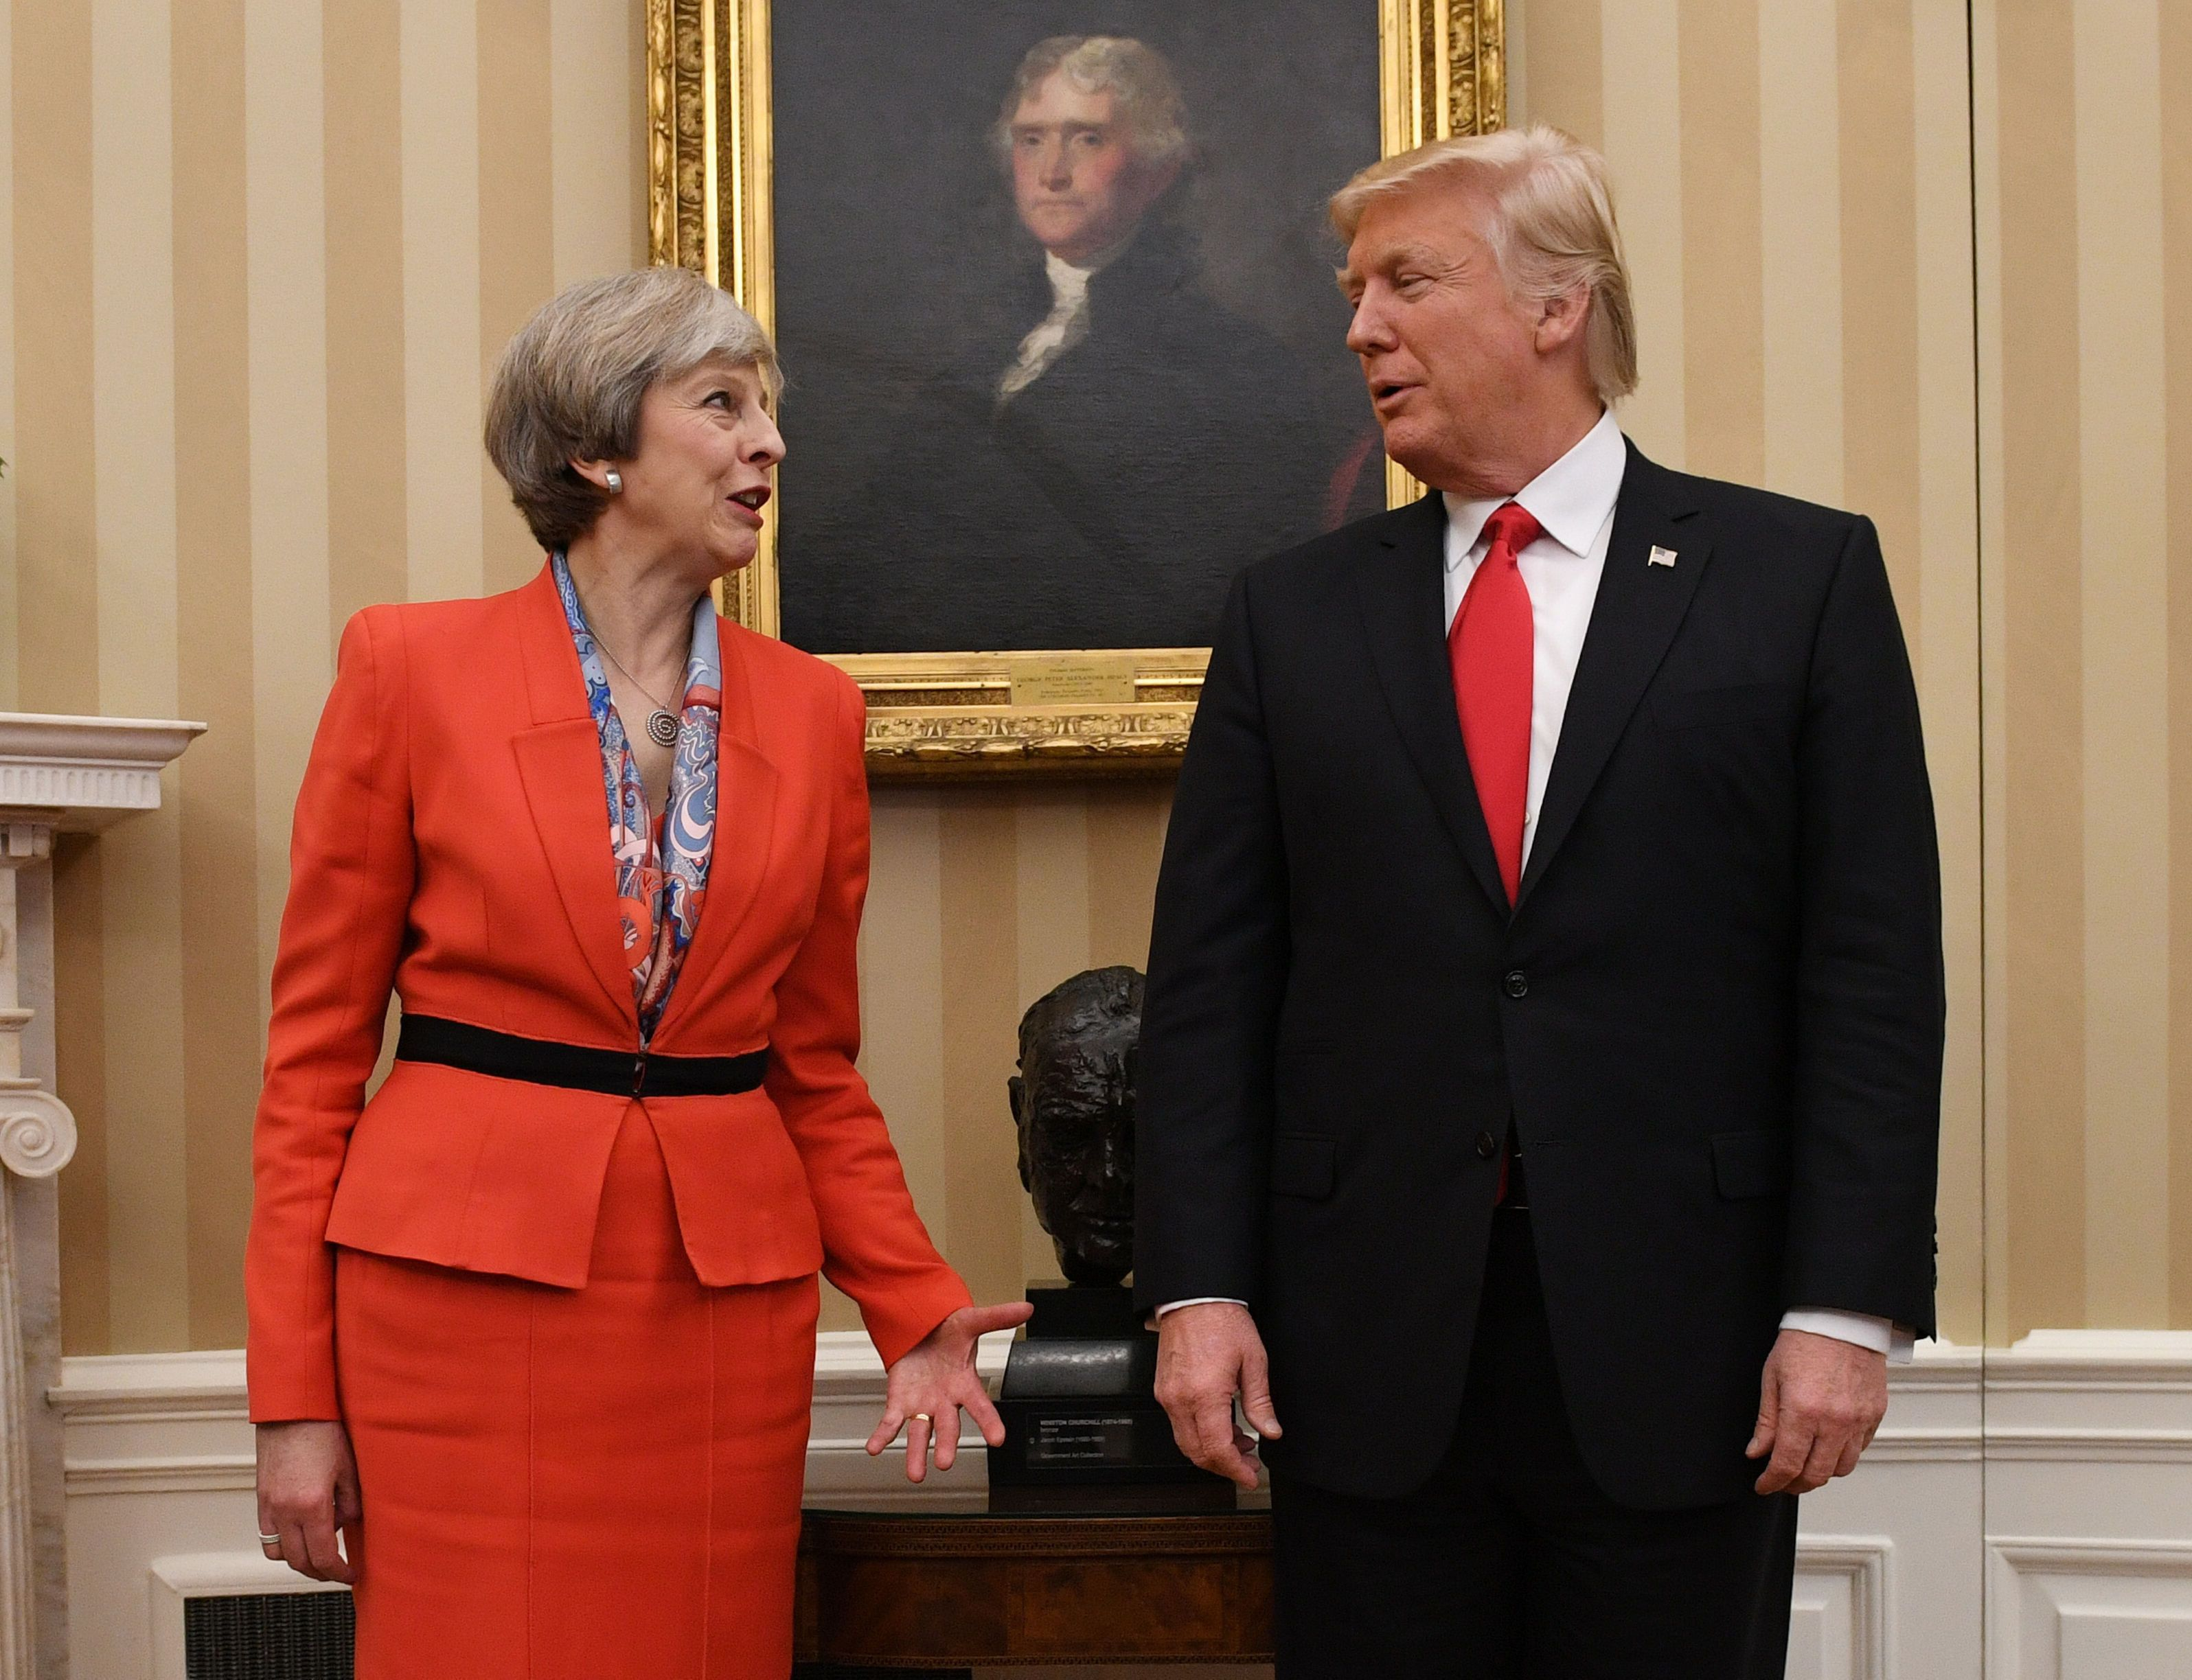 Trump's expected United Kingdom visit in July certain to cause protest